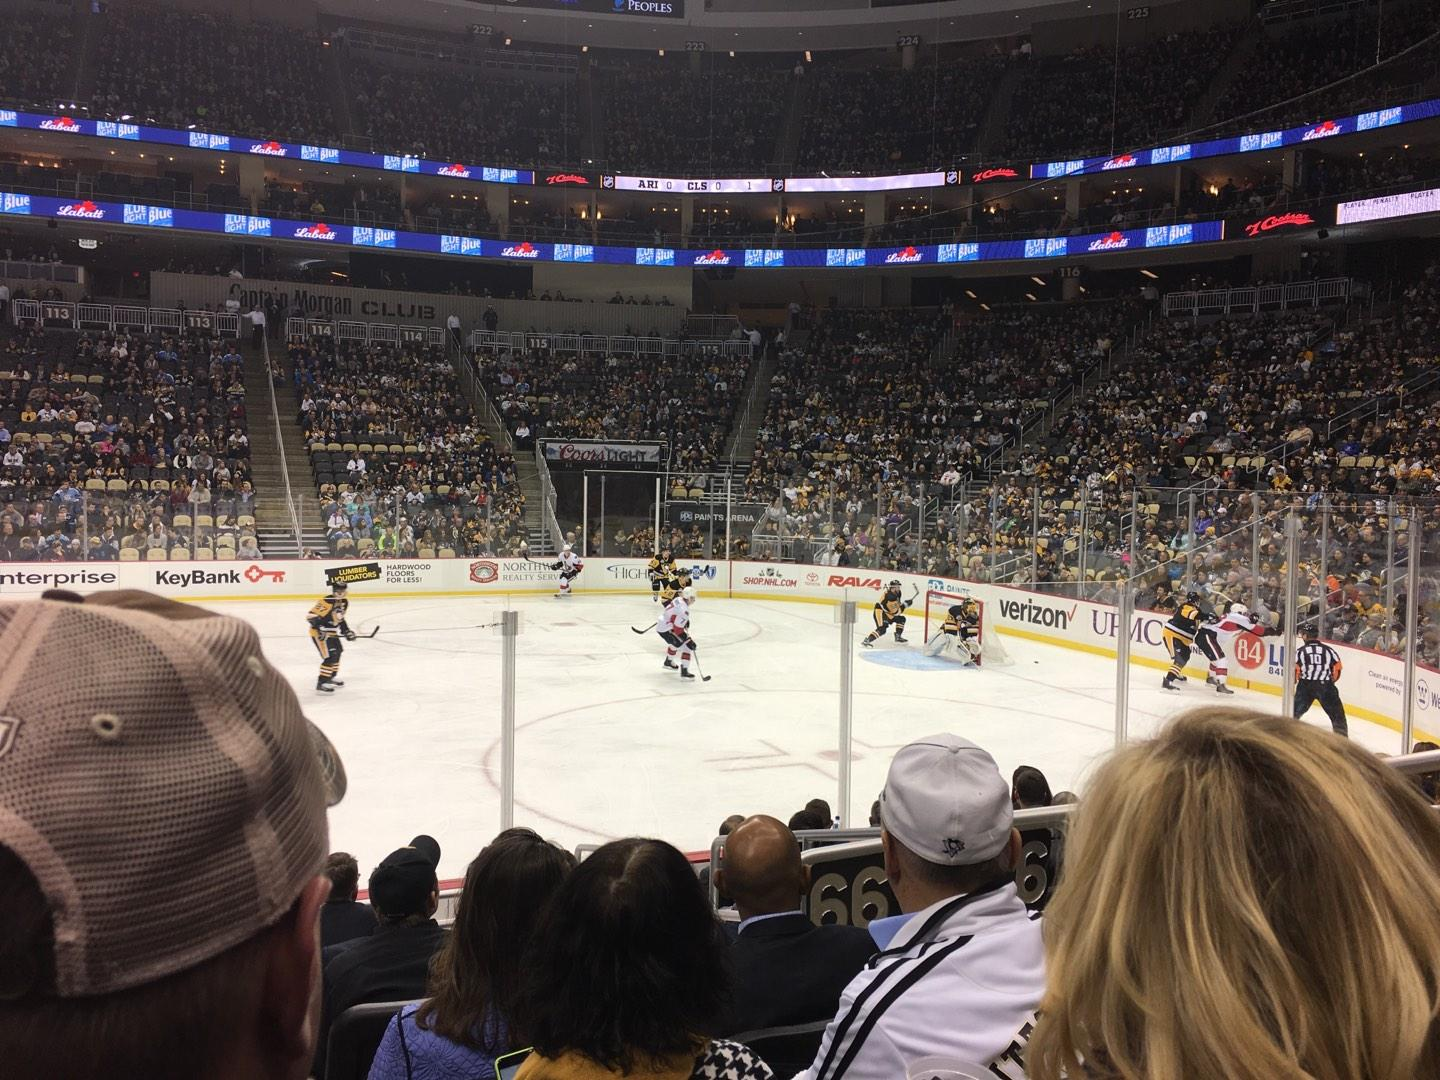 PPG Paints Arena Section 101 Row J Seat 3